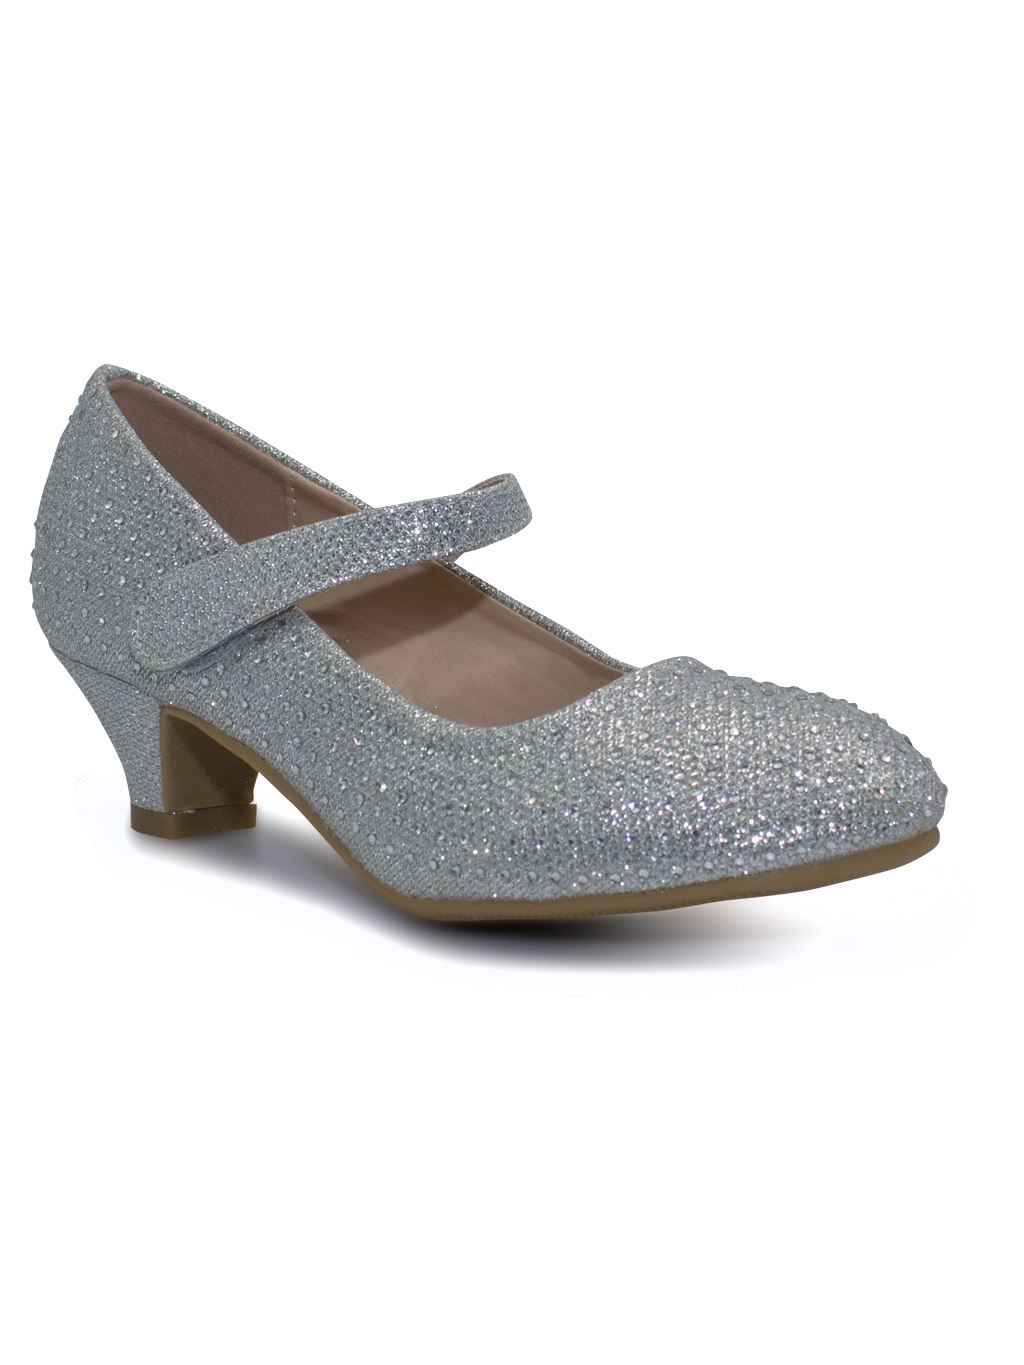 Girls-Party-Bridesmaid-Glitter-Diamante-Wedding-Block-Low-Heel-Shoes miniatura 8